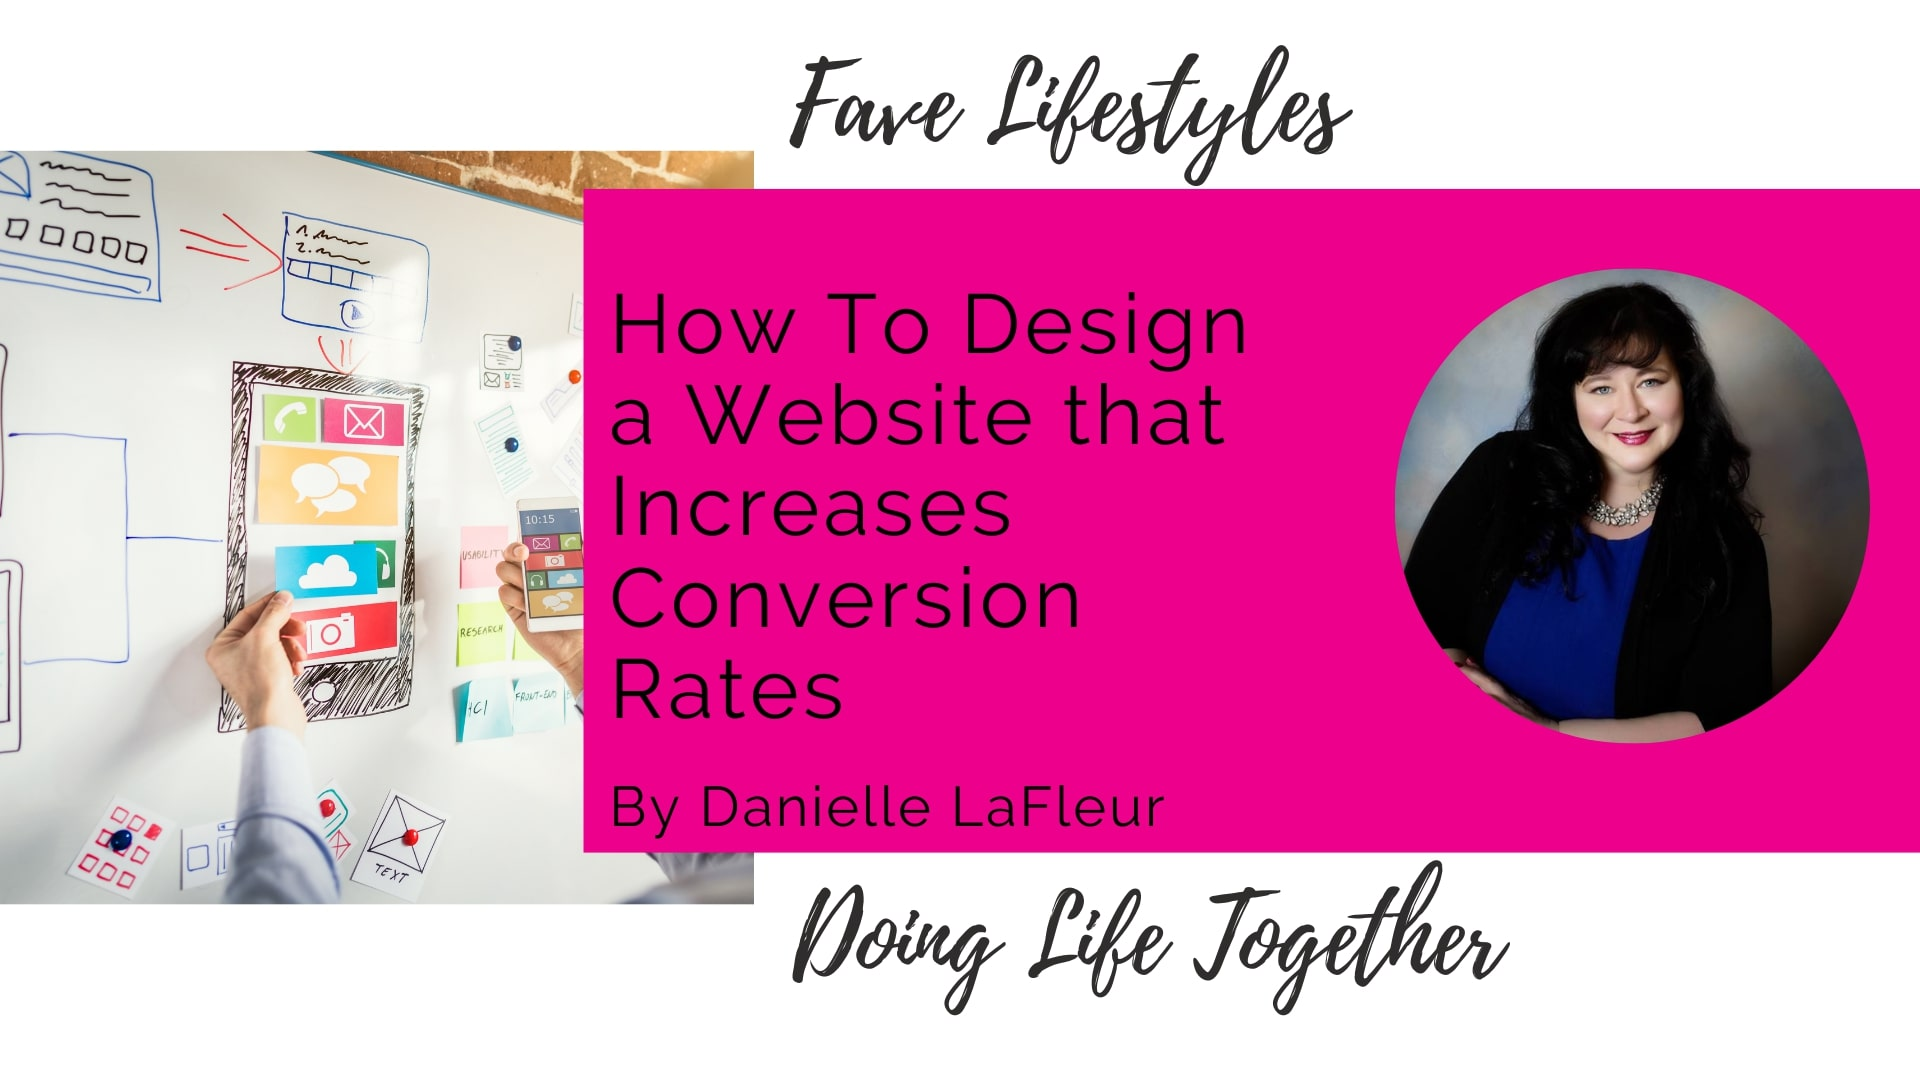 Steps On How To Design a Website that Increases Conversion Rates